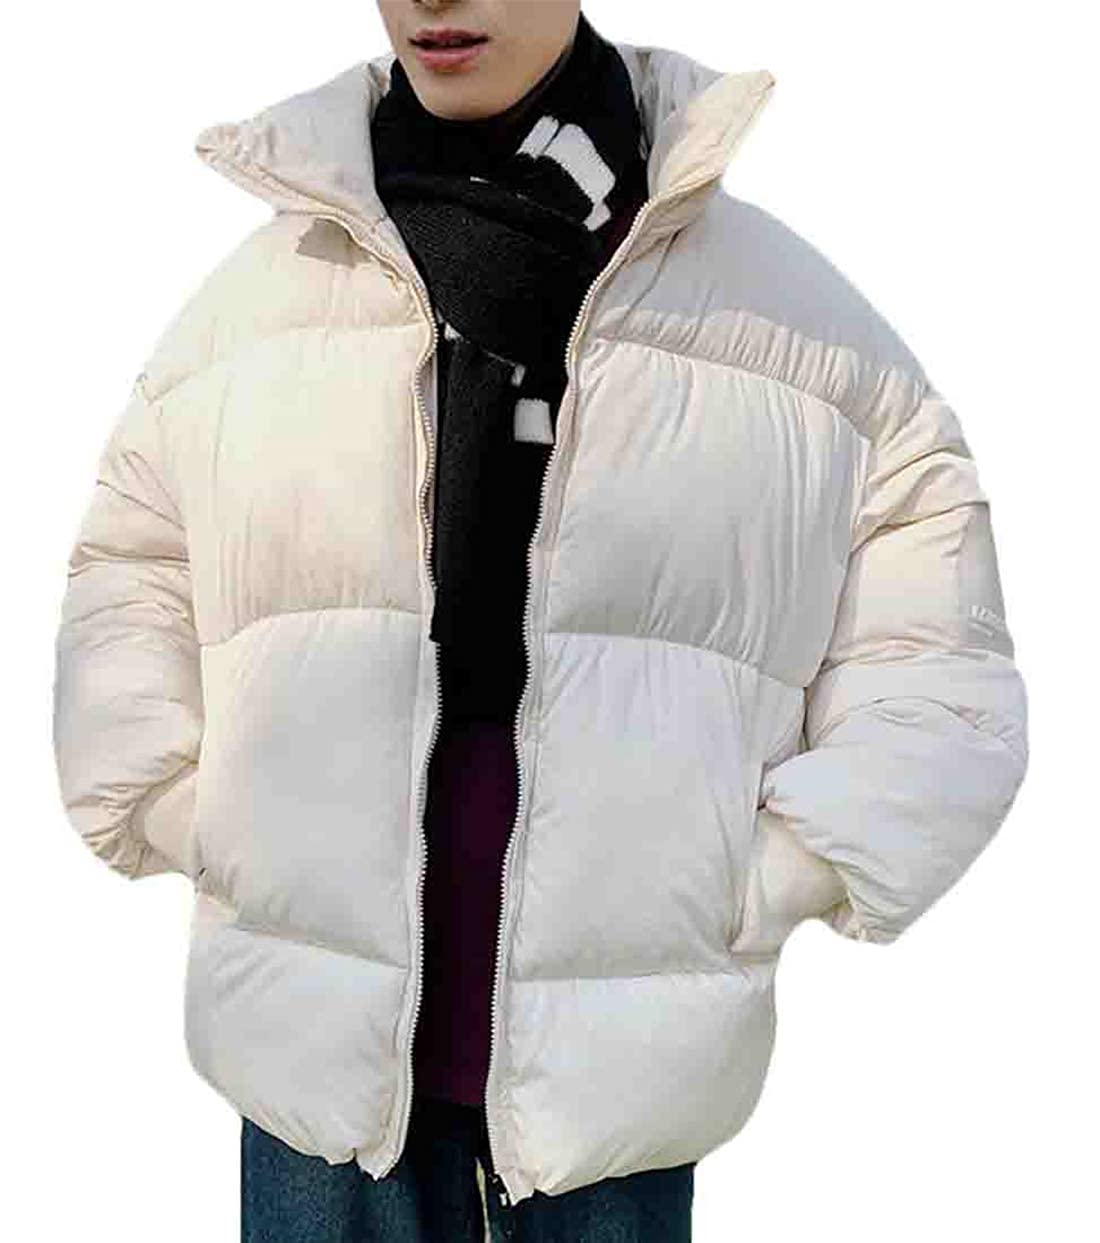 Wilngo Men Winter Full-Zip Thicken Quilted Padded Coat Warm Baggy Down Jacket Outwear